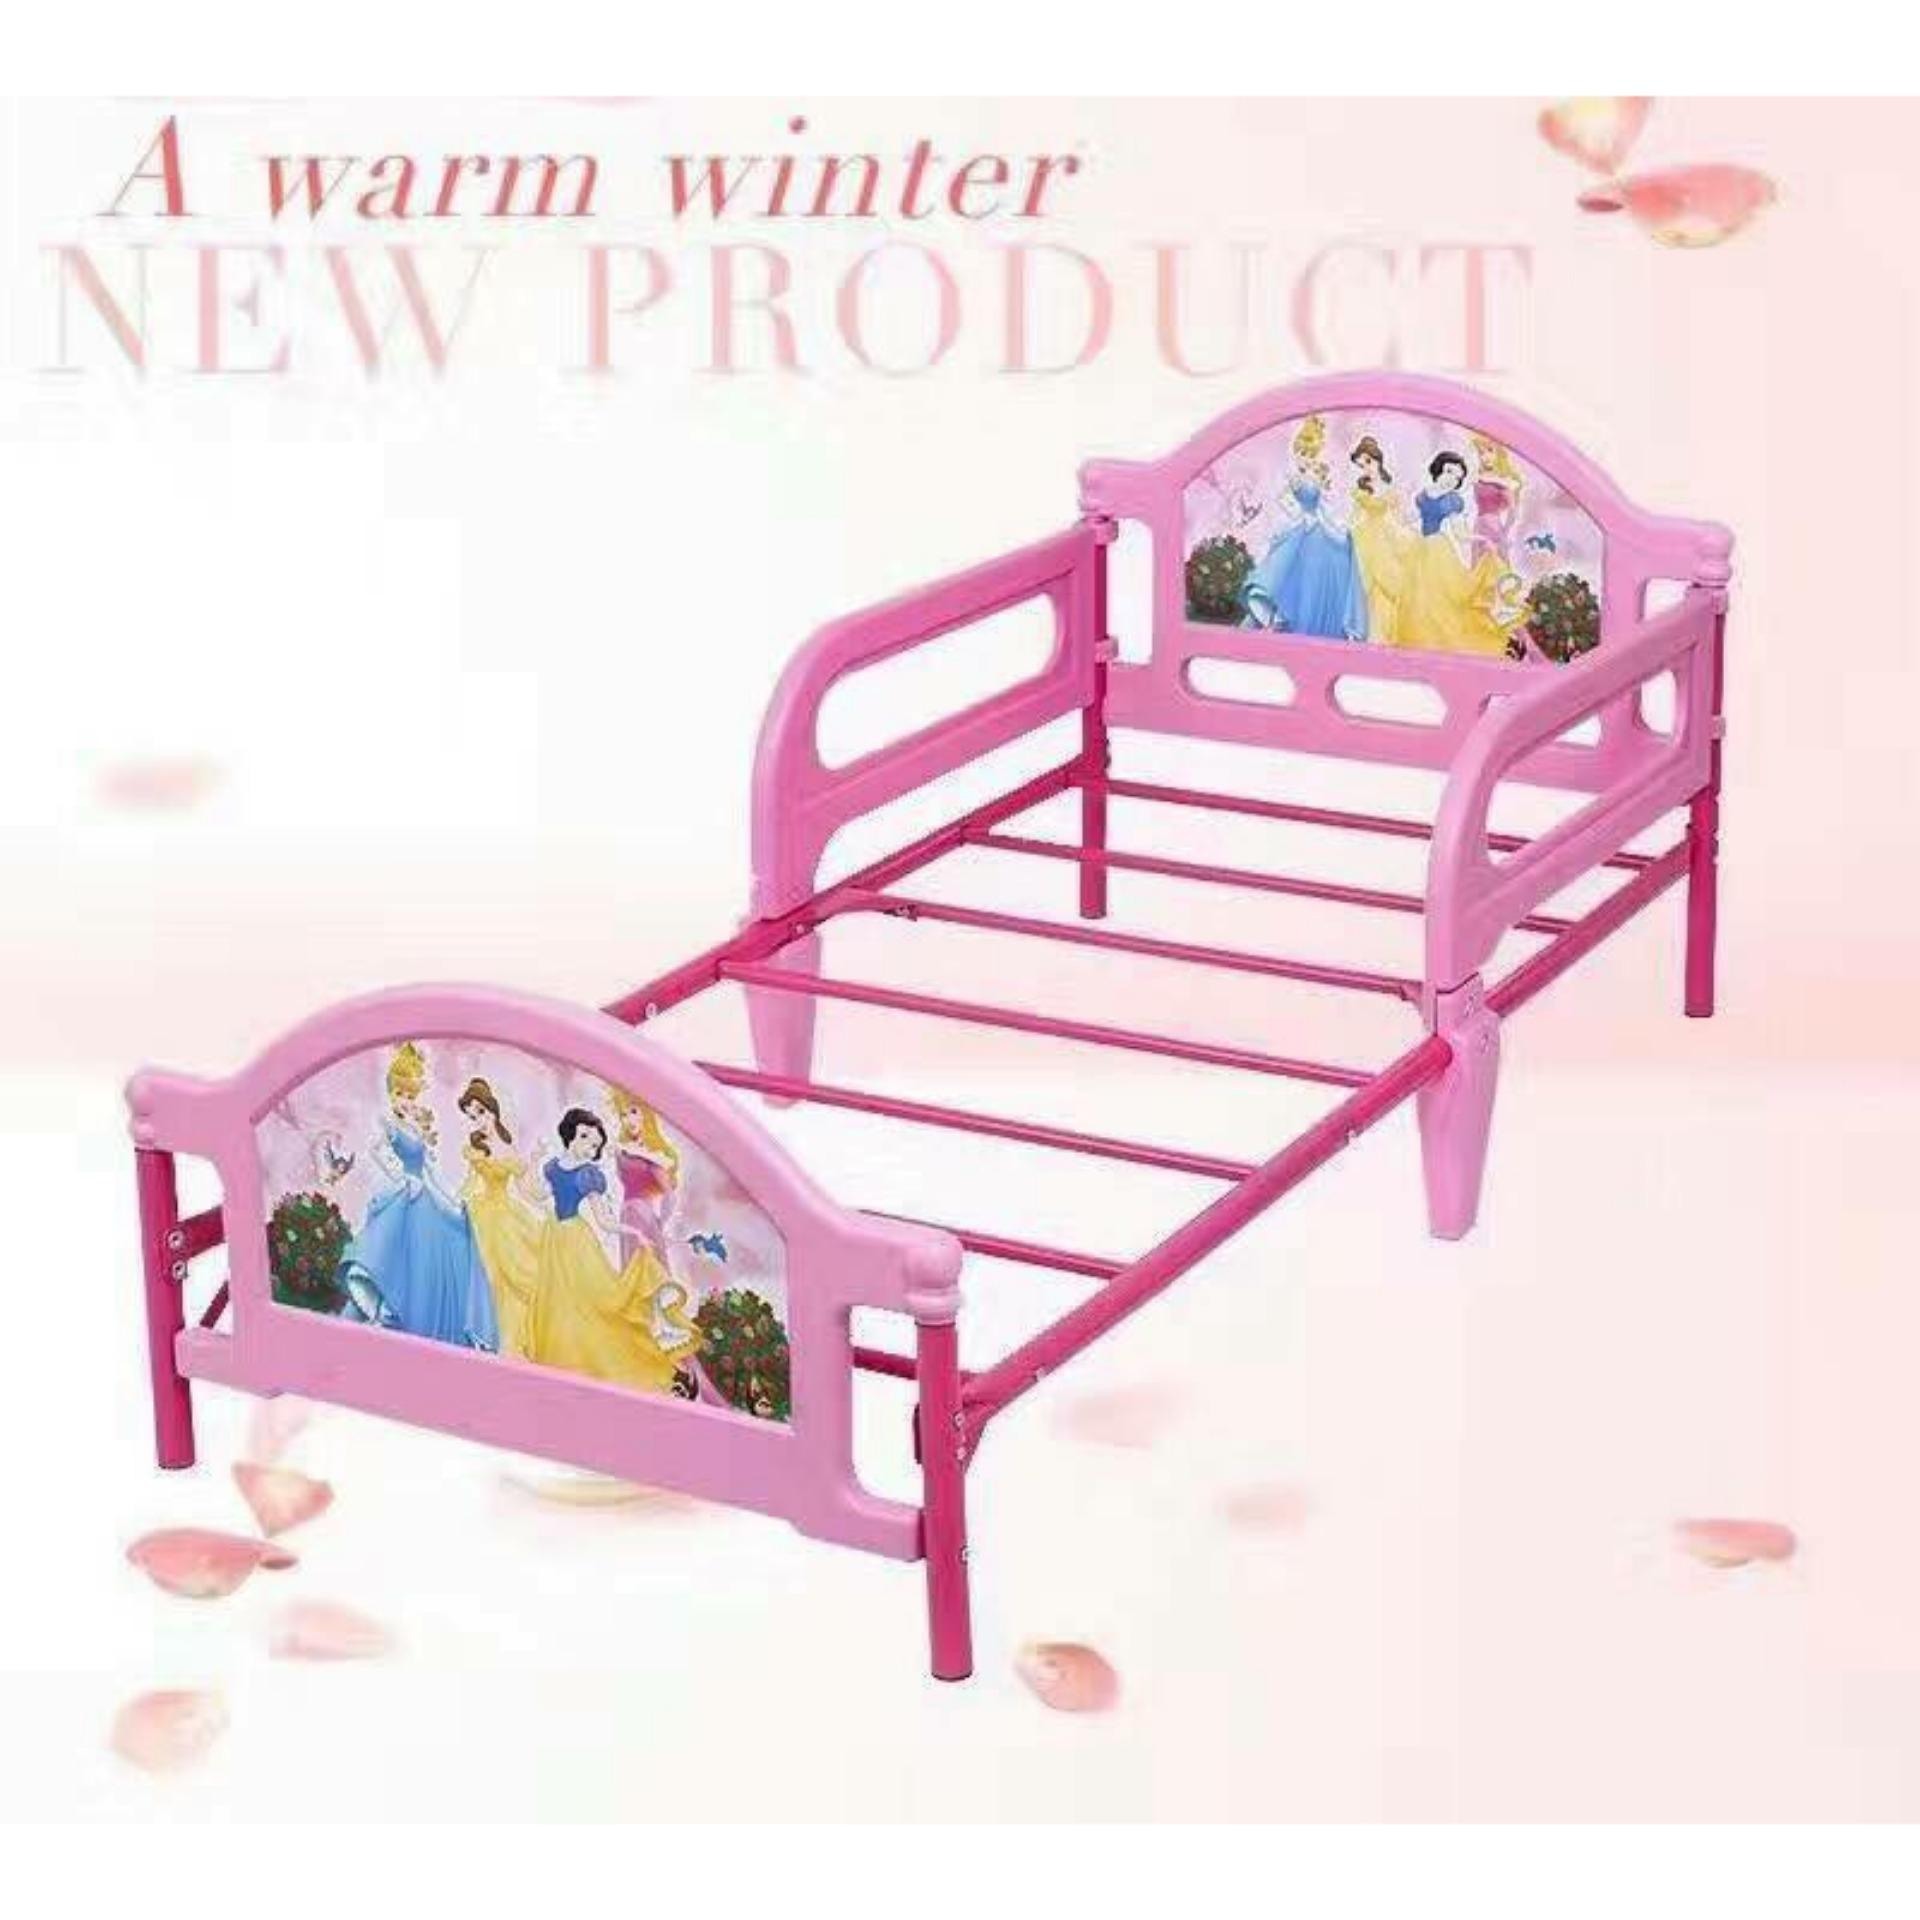 BodegaSurplusTools Kiddie Bed Frame Toddler Princess DesignKids Bedroom Furniture PINK Adjustable Extendable